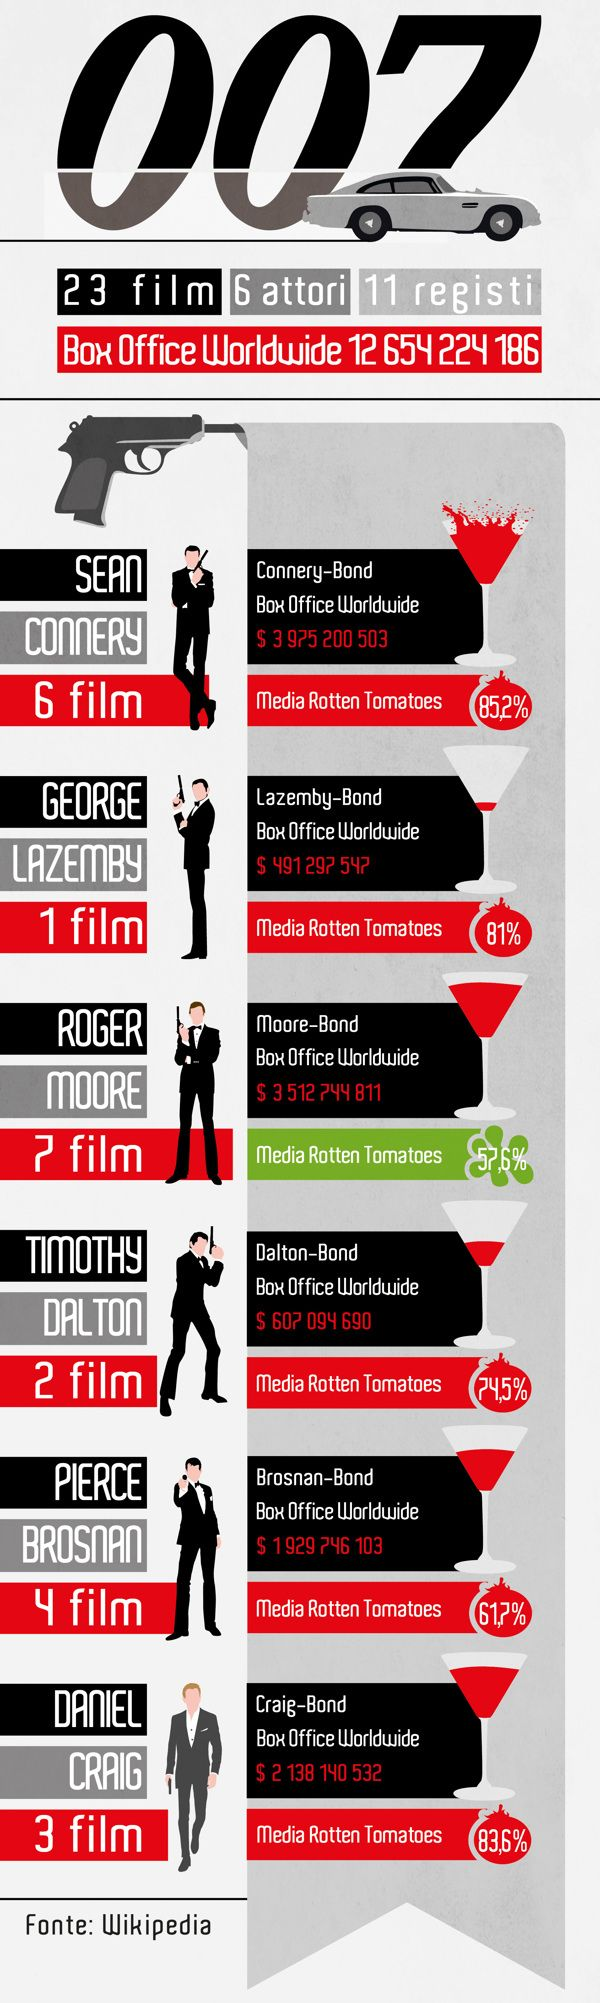 Infografica 007 by Gianni Peruzzo, via Behance